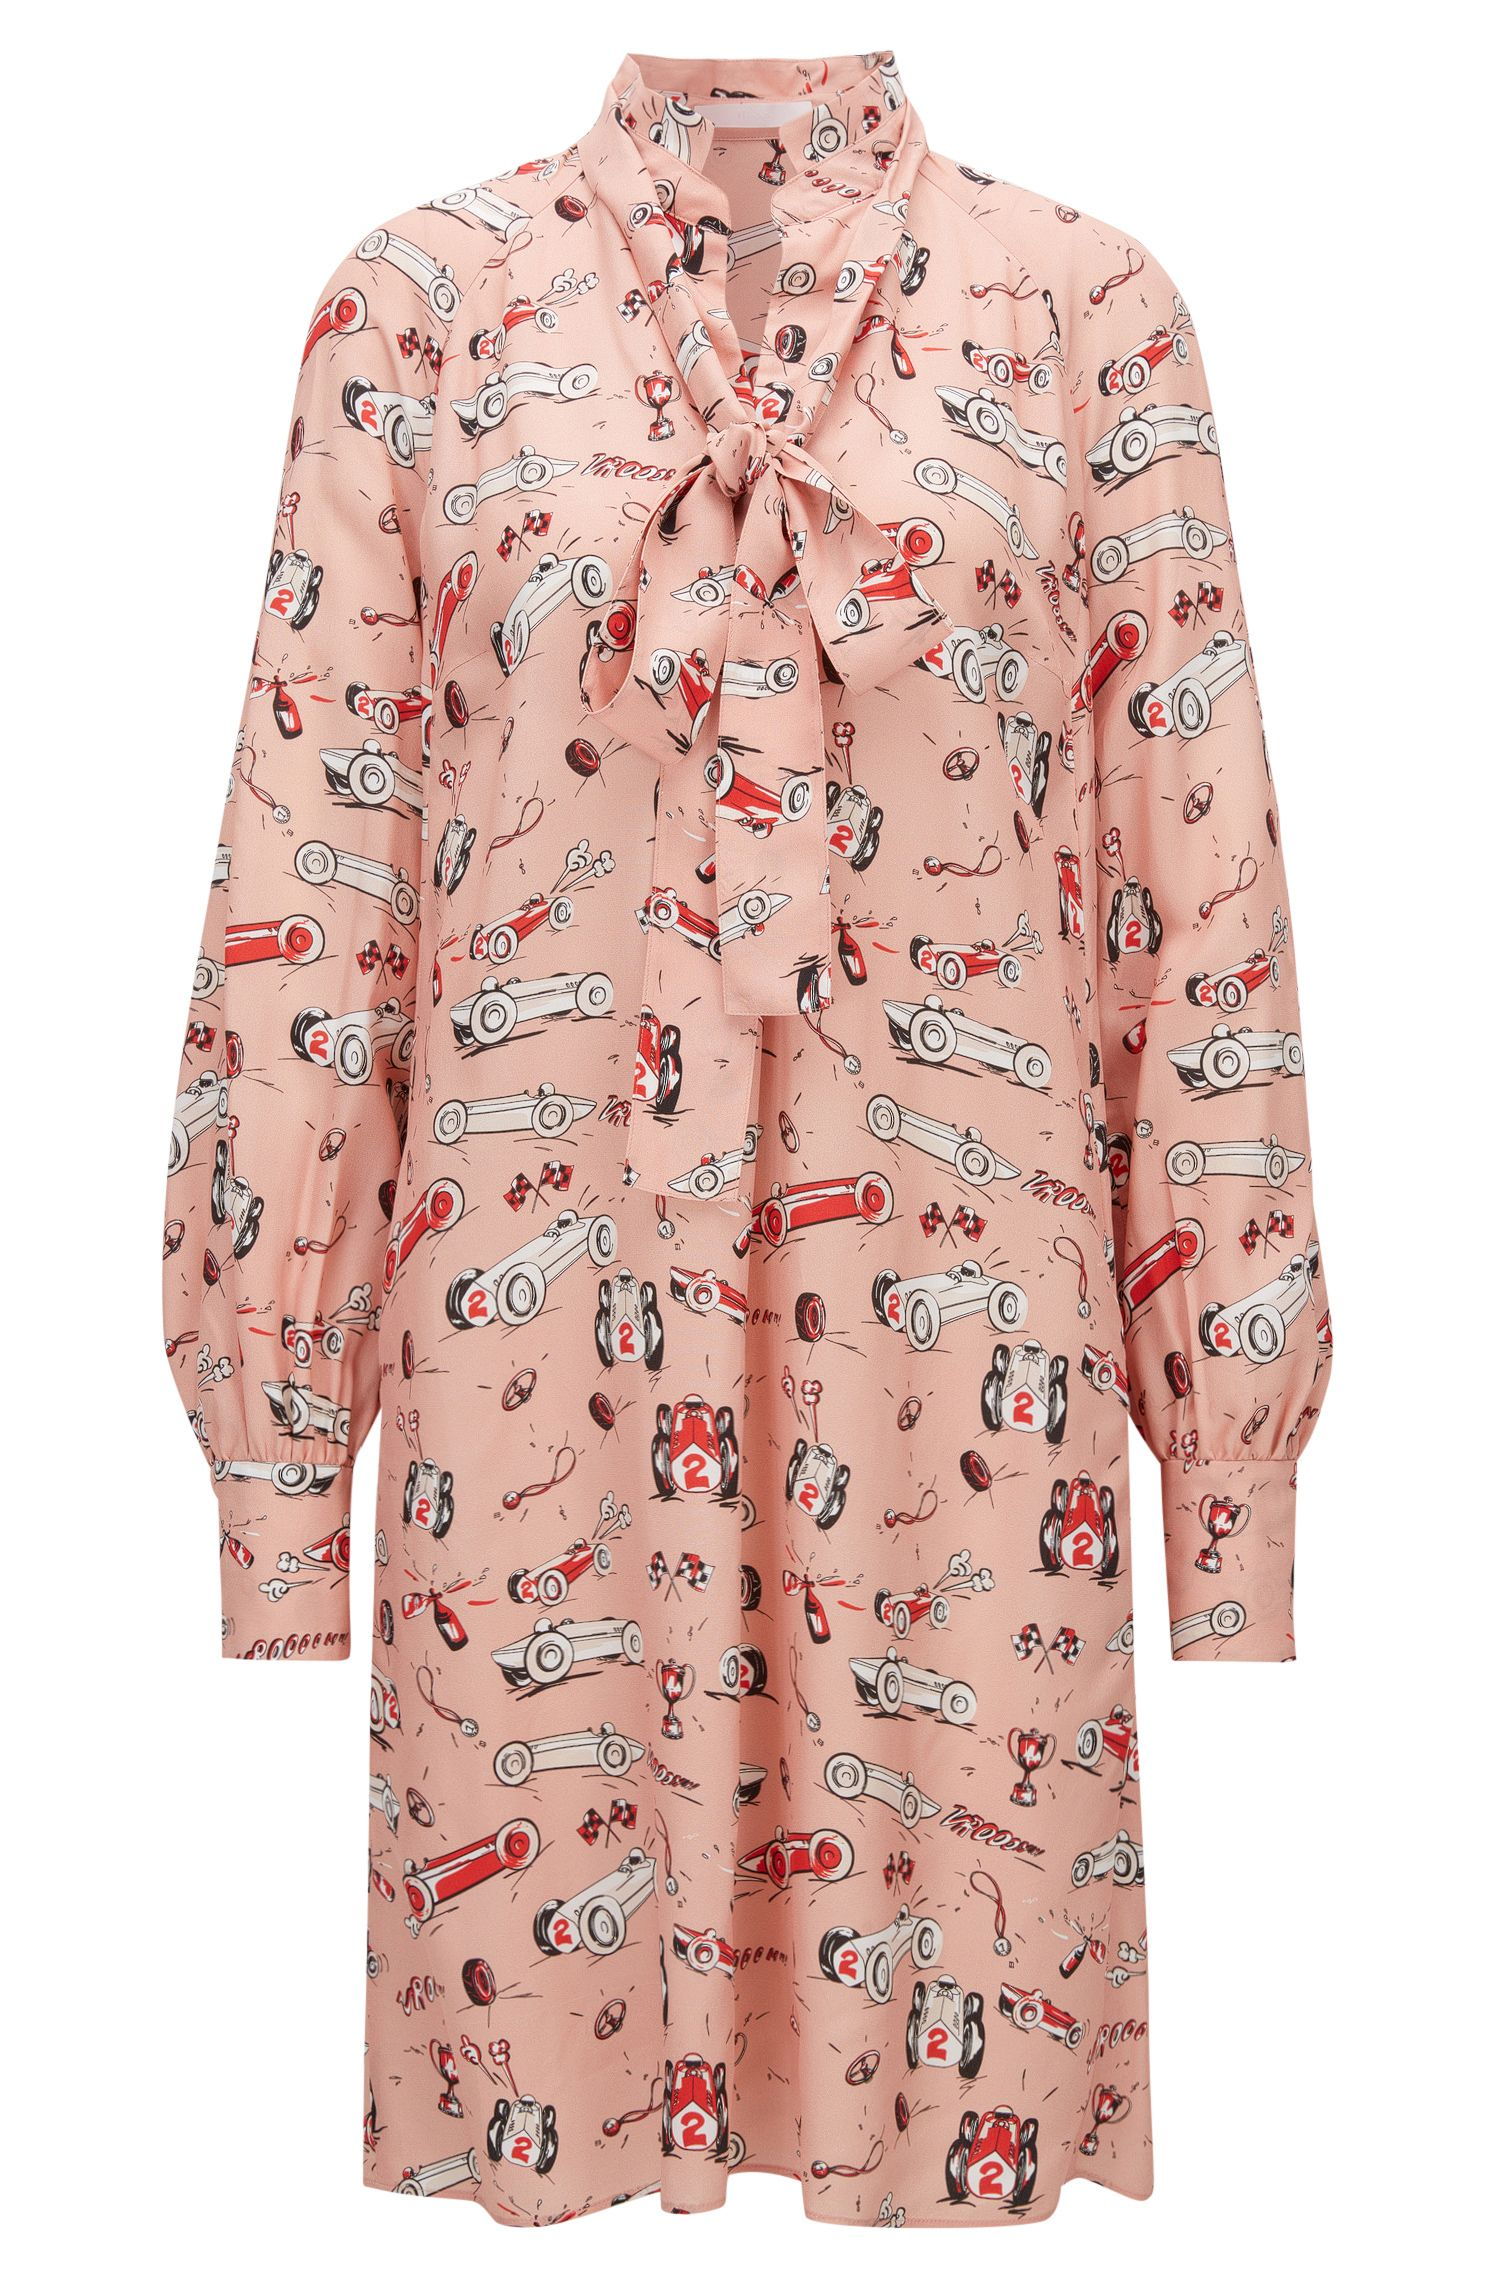 Race Car Viscose Shirtdress | Dowidana